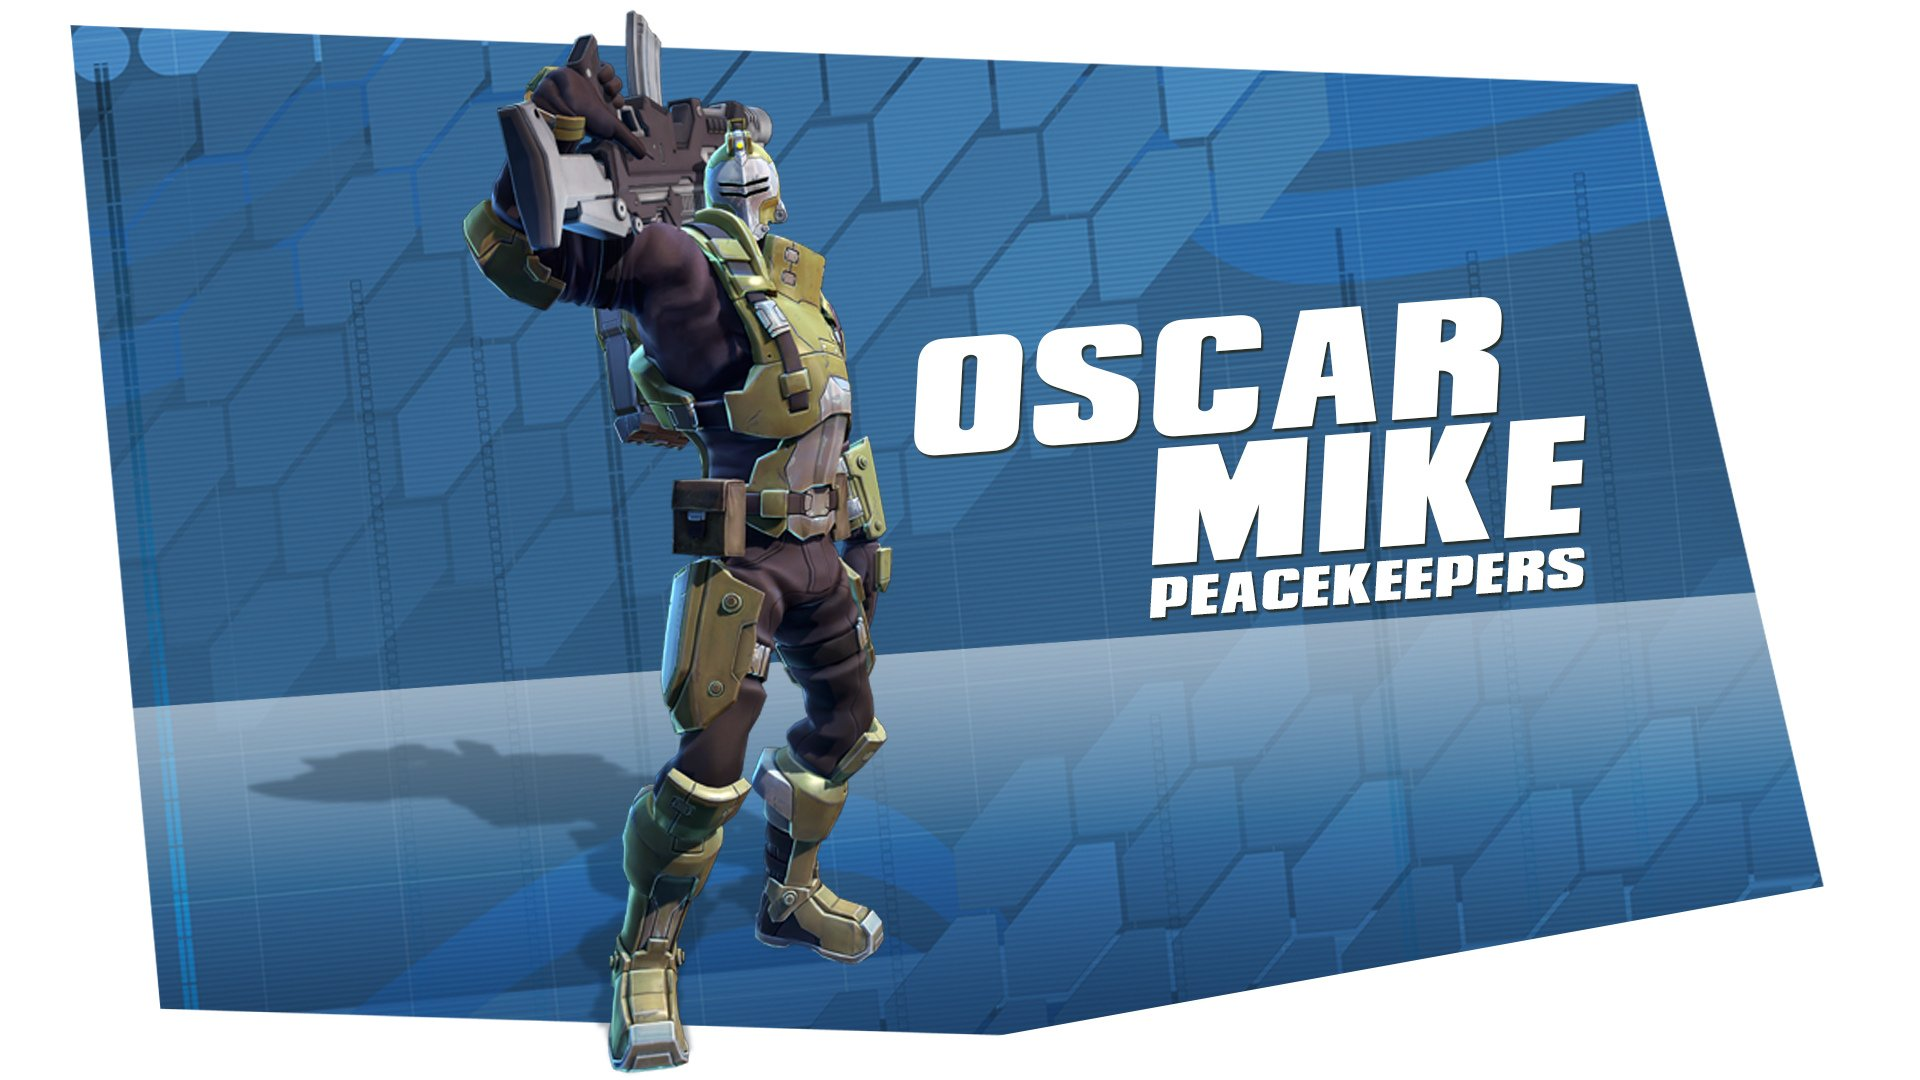 1600x1200 Oscar Mike Peacekeepers Battleborn 1600x1200 Resolution Hd 4k Wallpapers Images Backgrounds Photos And Pictures